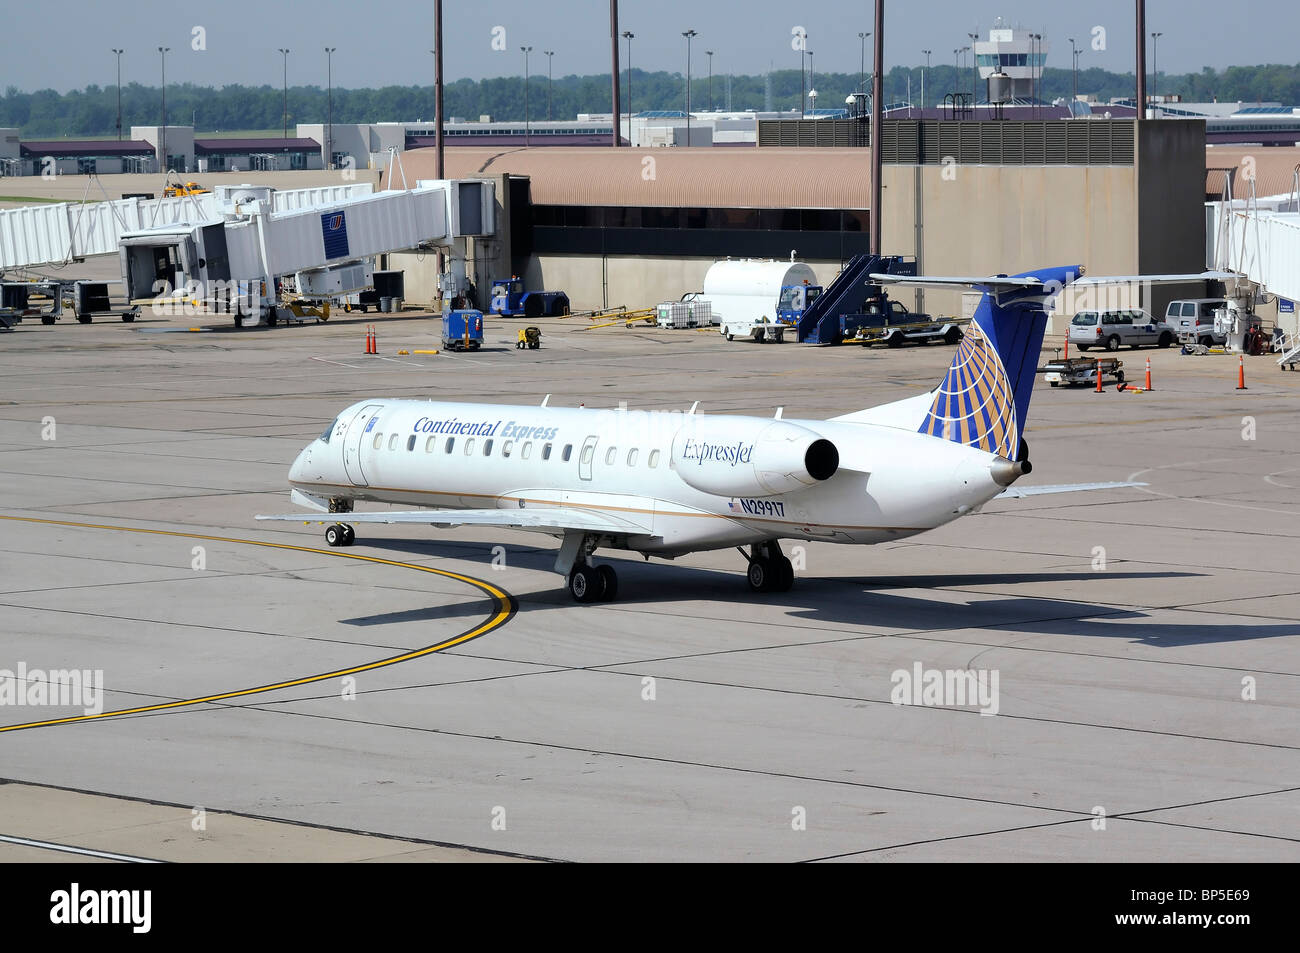 Airplane taxiing from the terminal at Cincinnati/Northern Kentucky International Airport - Stock Image